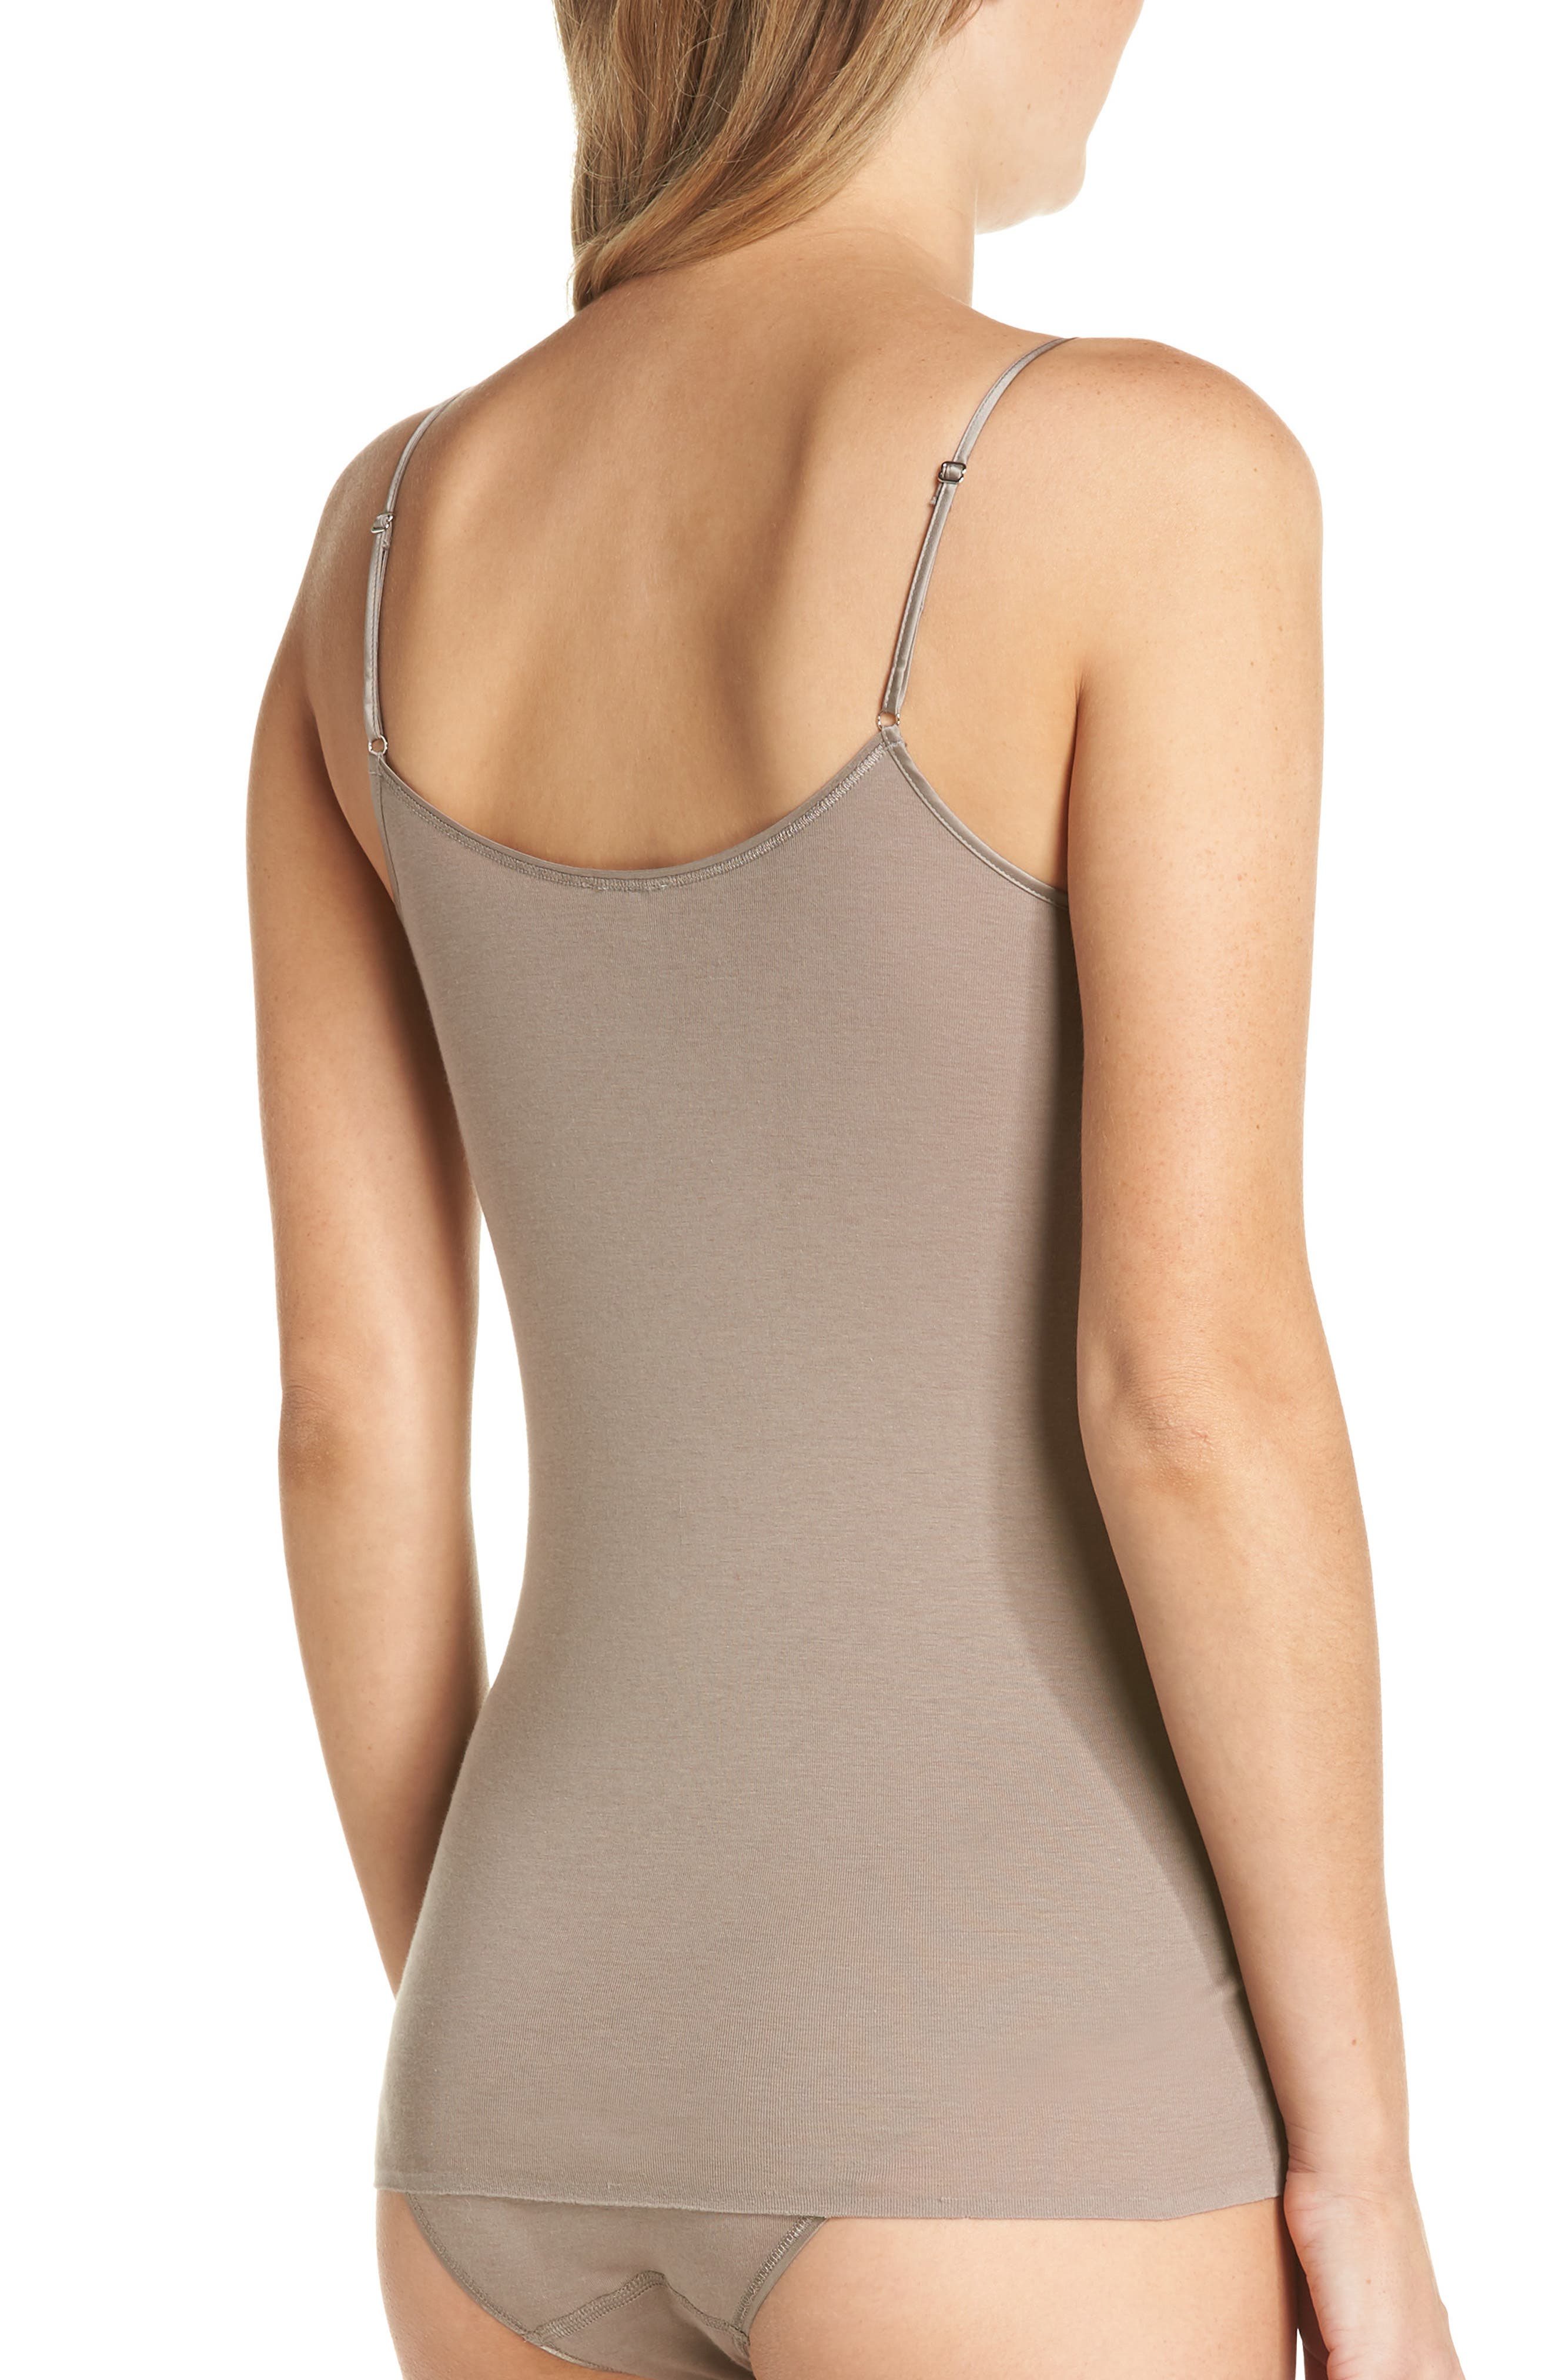 HANRO,                             Seamless V-Neck Cotton Camisole,                             Alternate thumbnail 2, color,                             VINTAGE TAUPE 1871